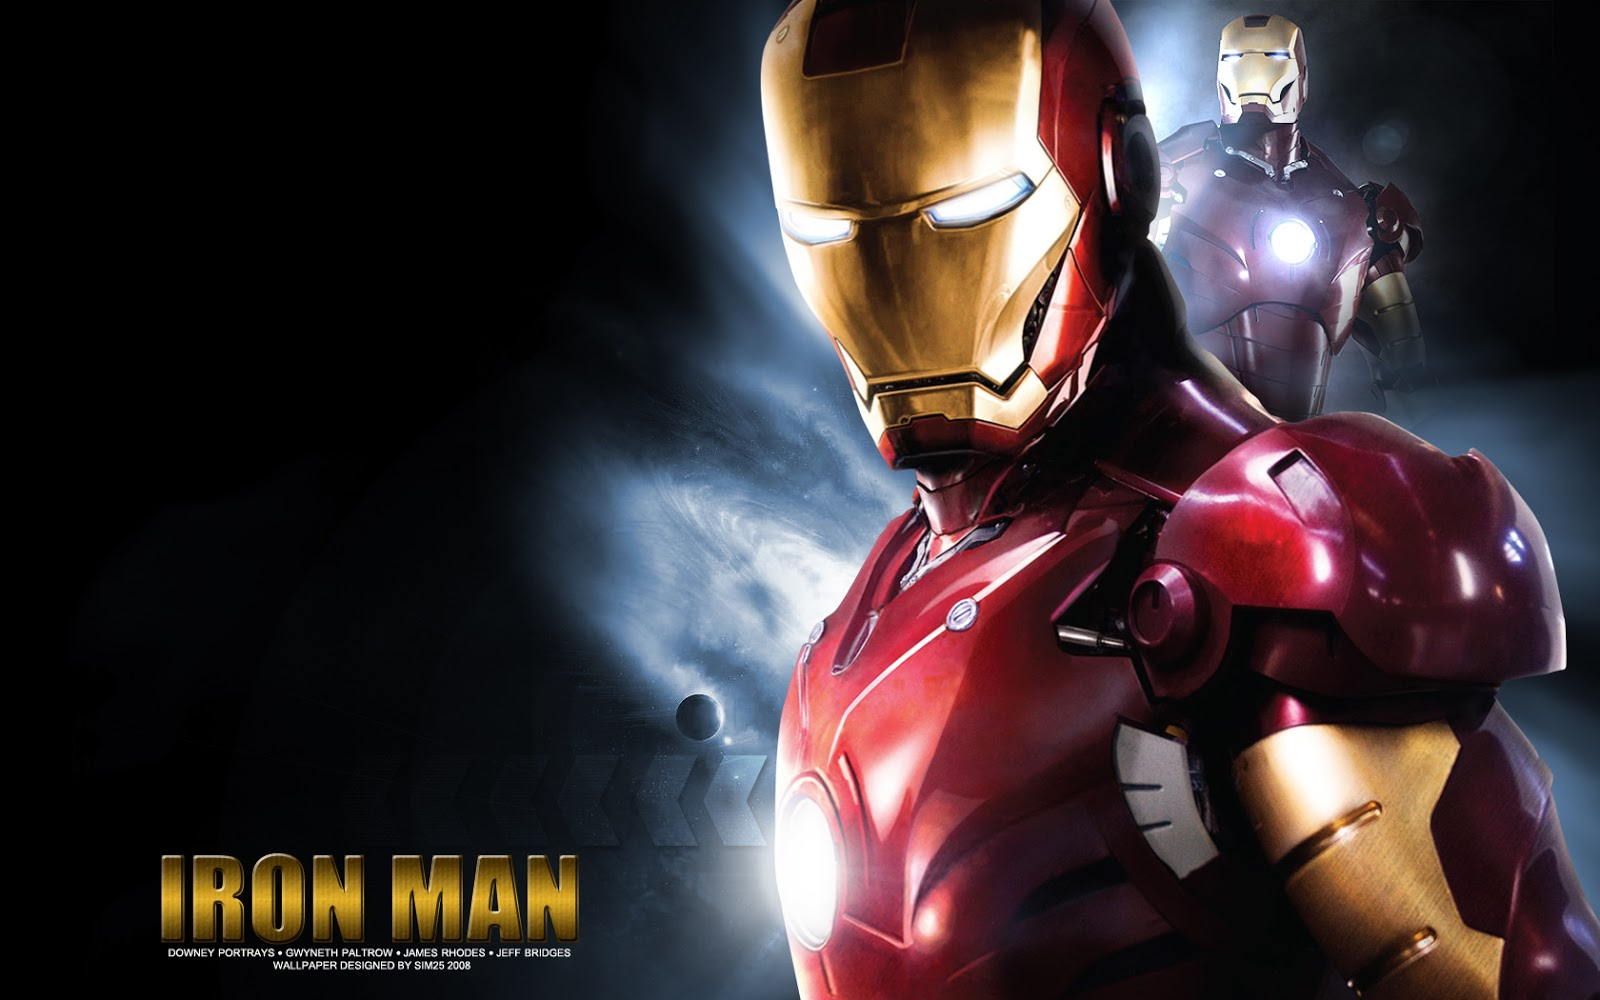 dating ironman Experience the avengers as you've never seen them before build the ultimate super hero academy, and play as your favorite avengers characters reimagined as students developing their superpowers.